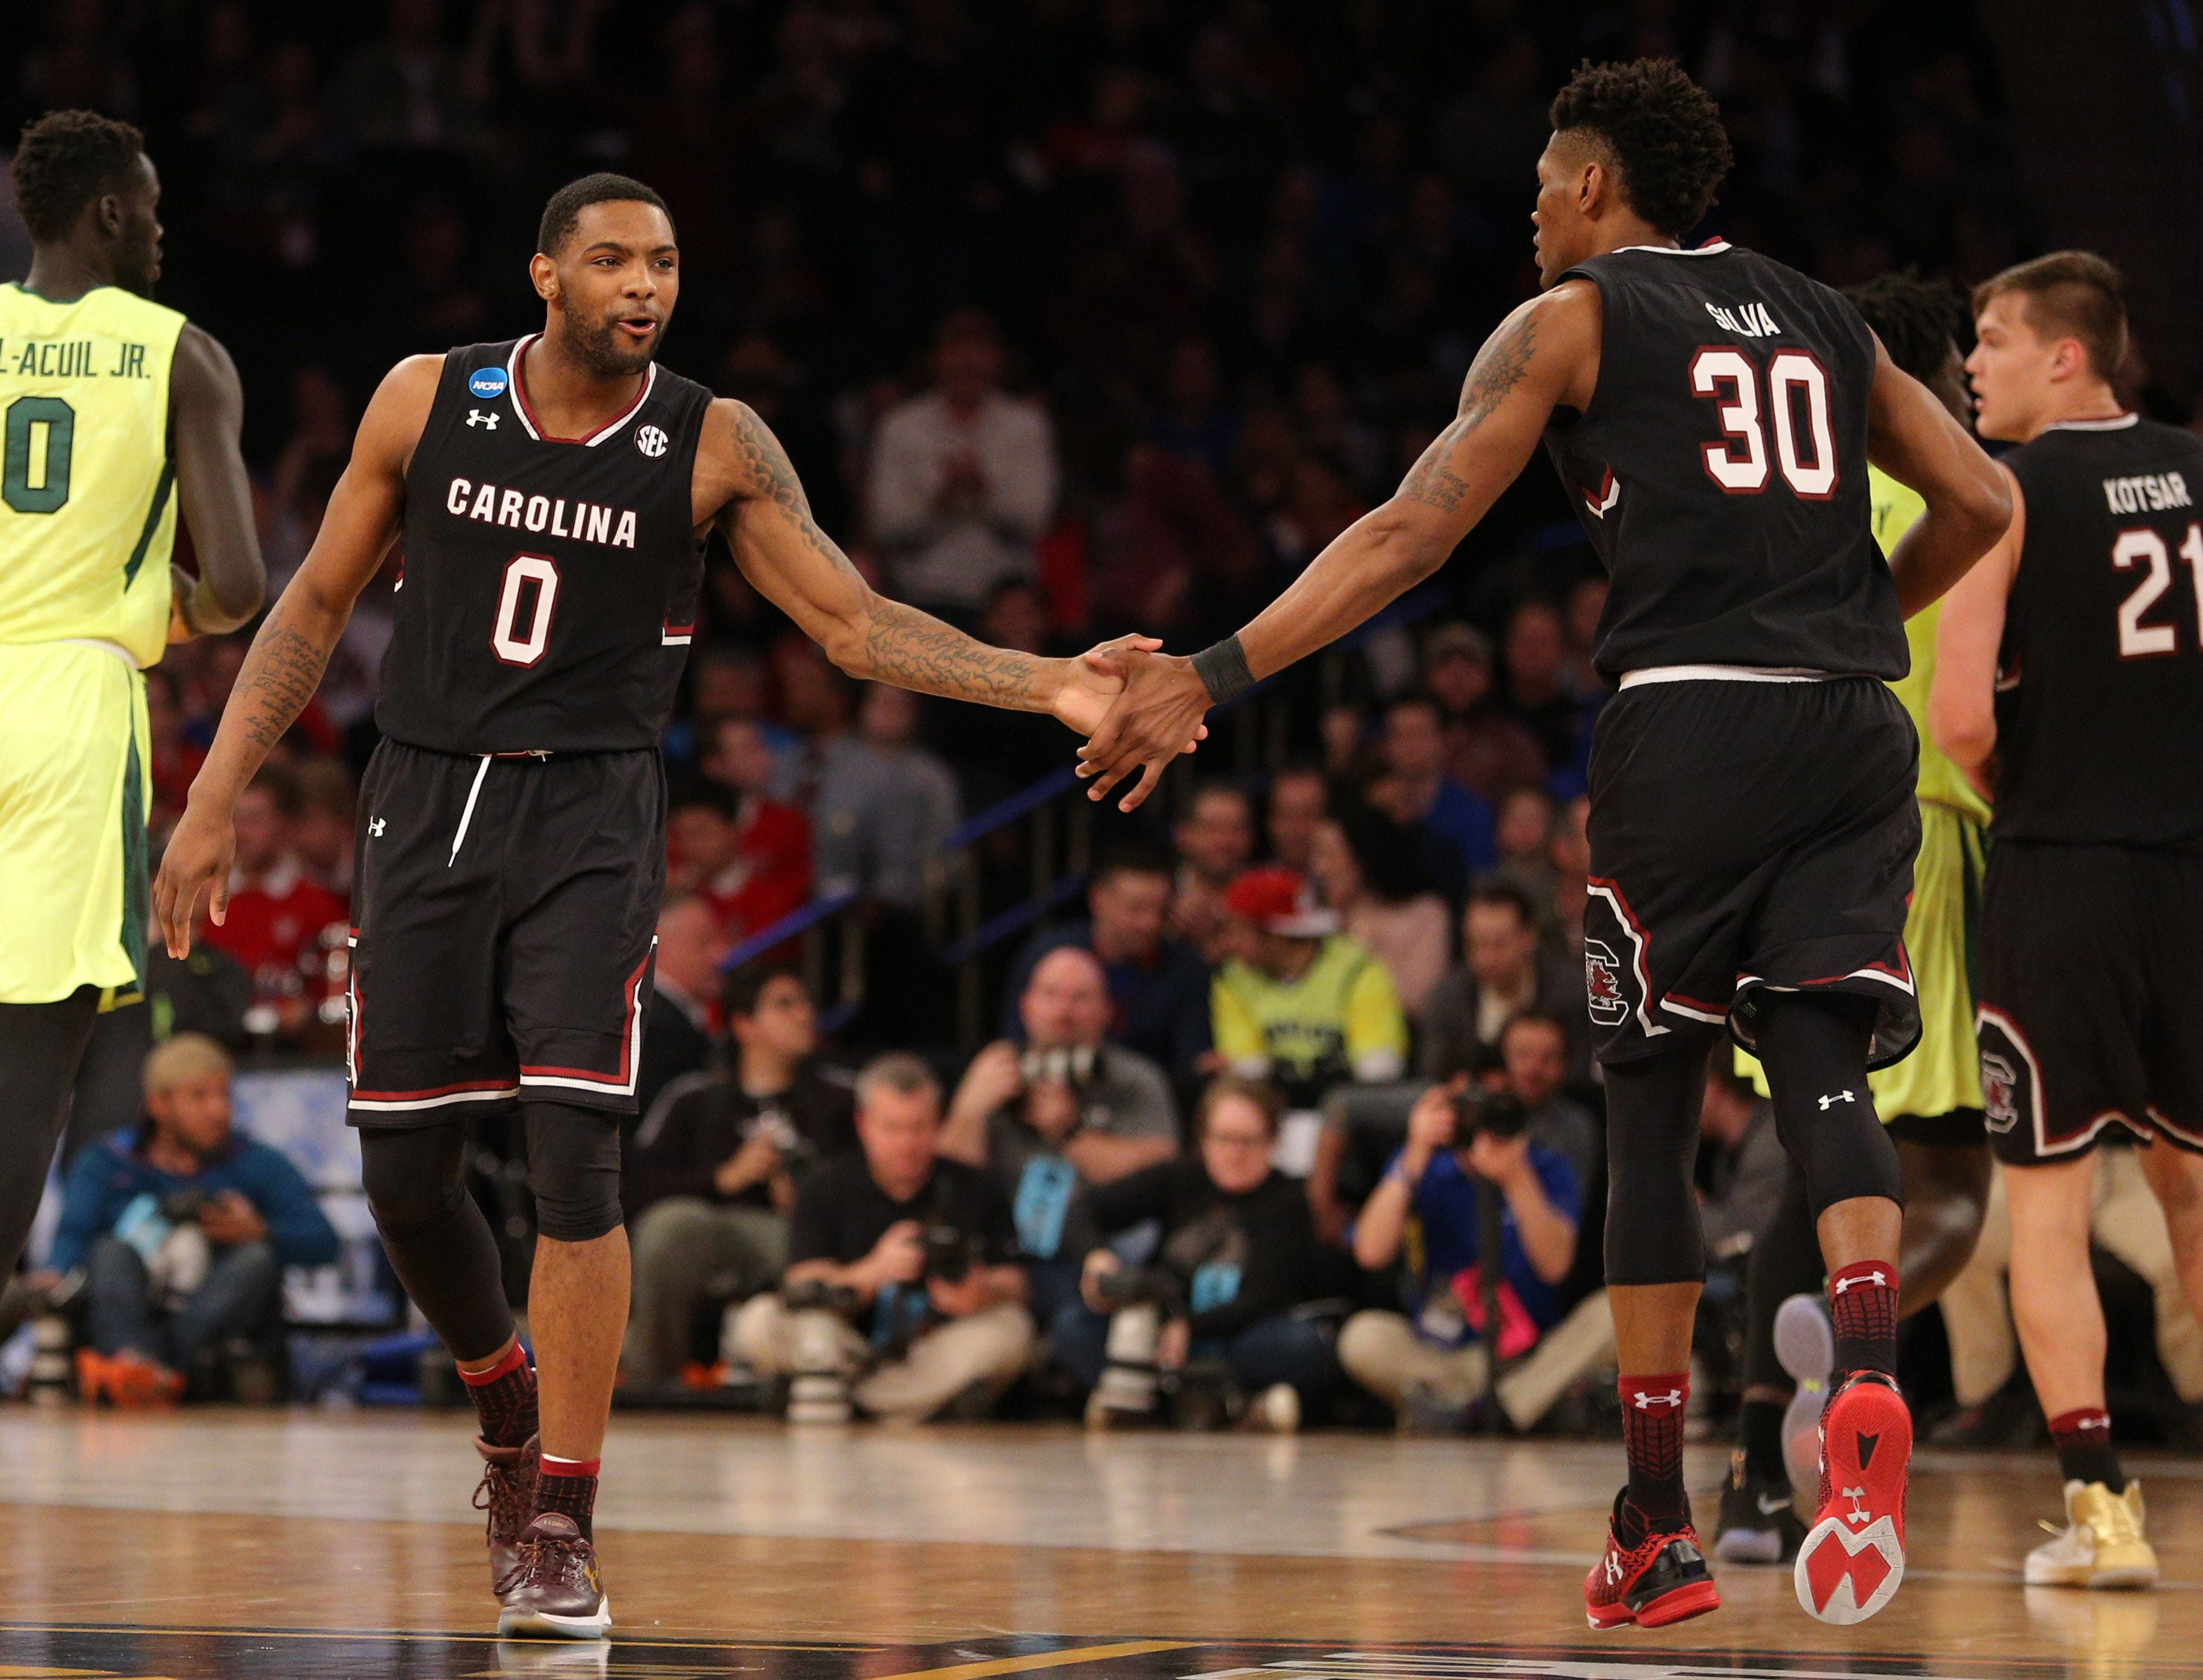 South Carolina's magical run continues with win vs. Baylor to reach Elite 8